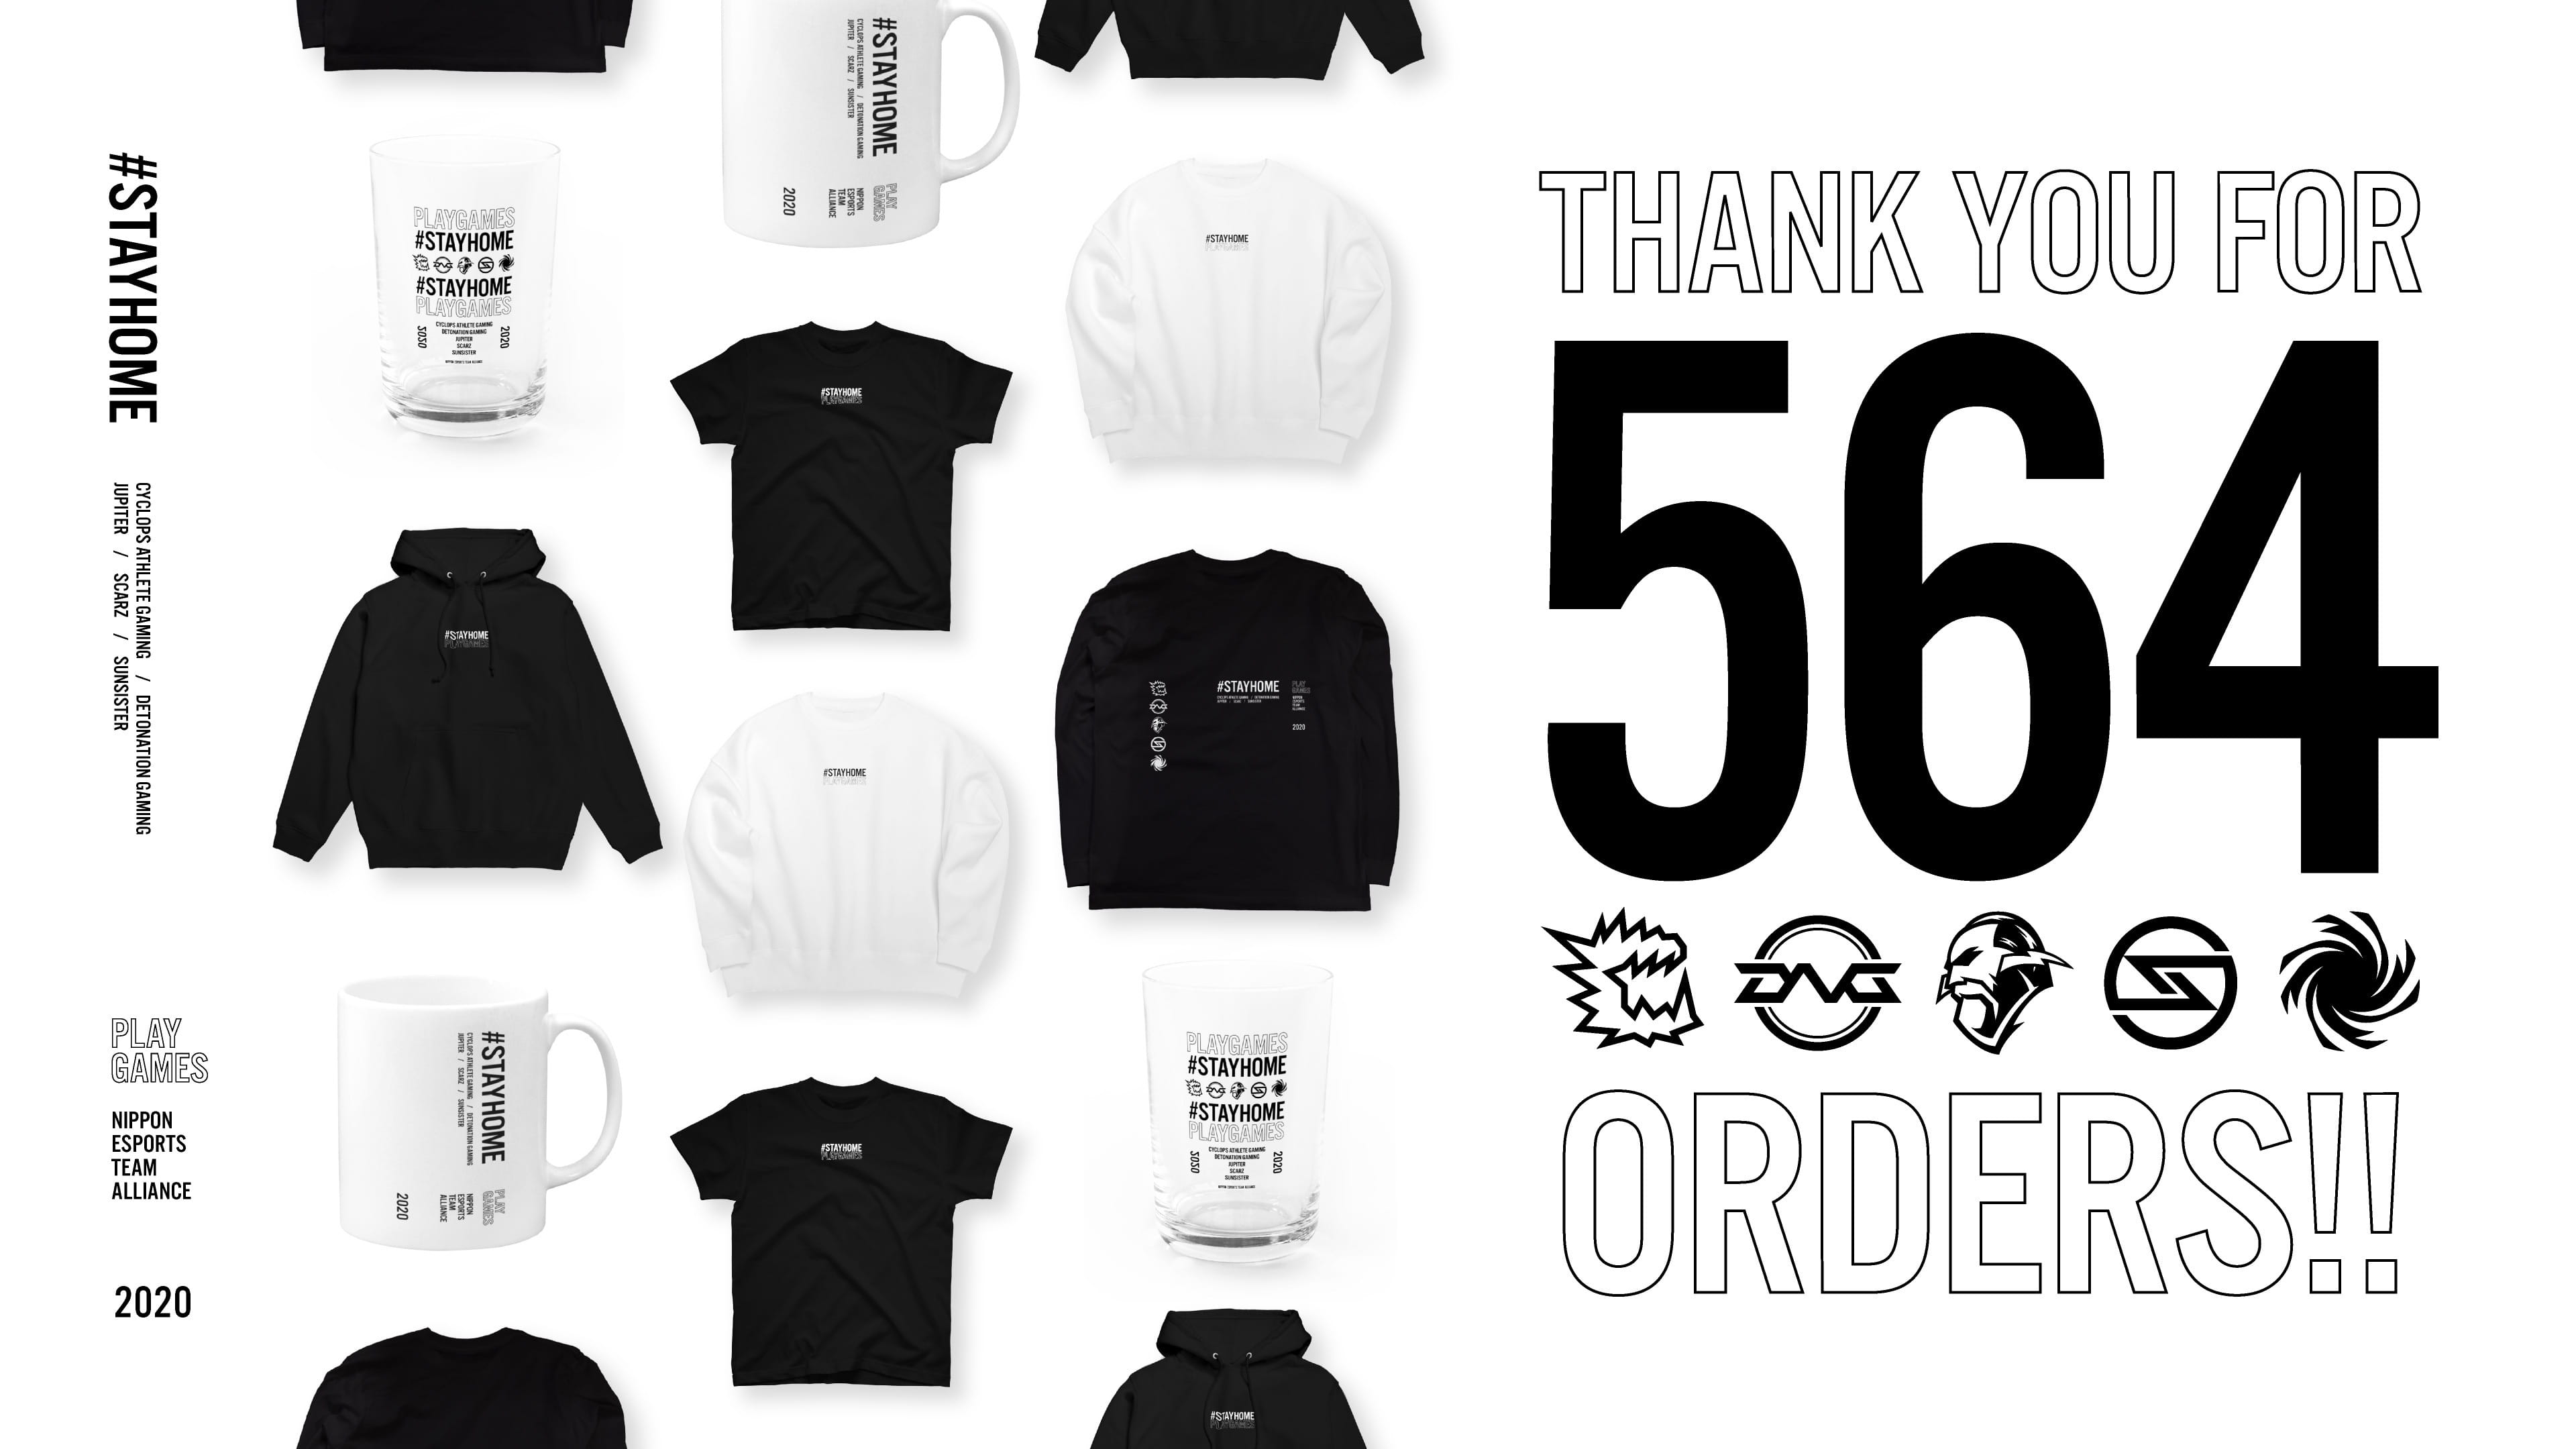 THANK YOU FOR 564 ORDERS!!